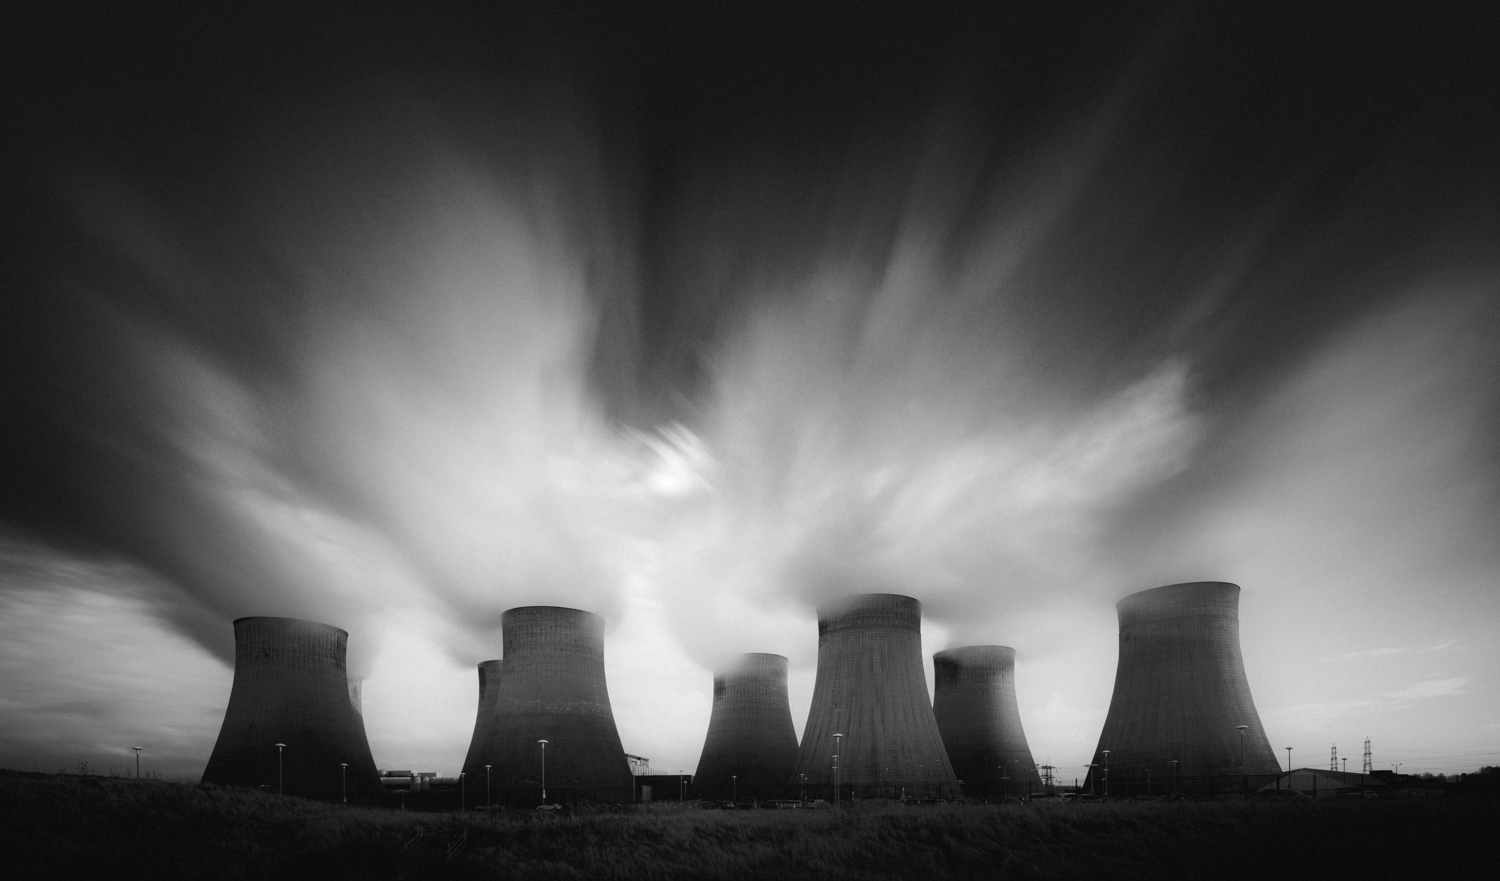 Turbulence, Ratcliffe Power Station